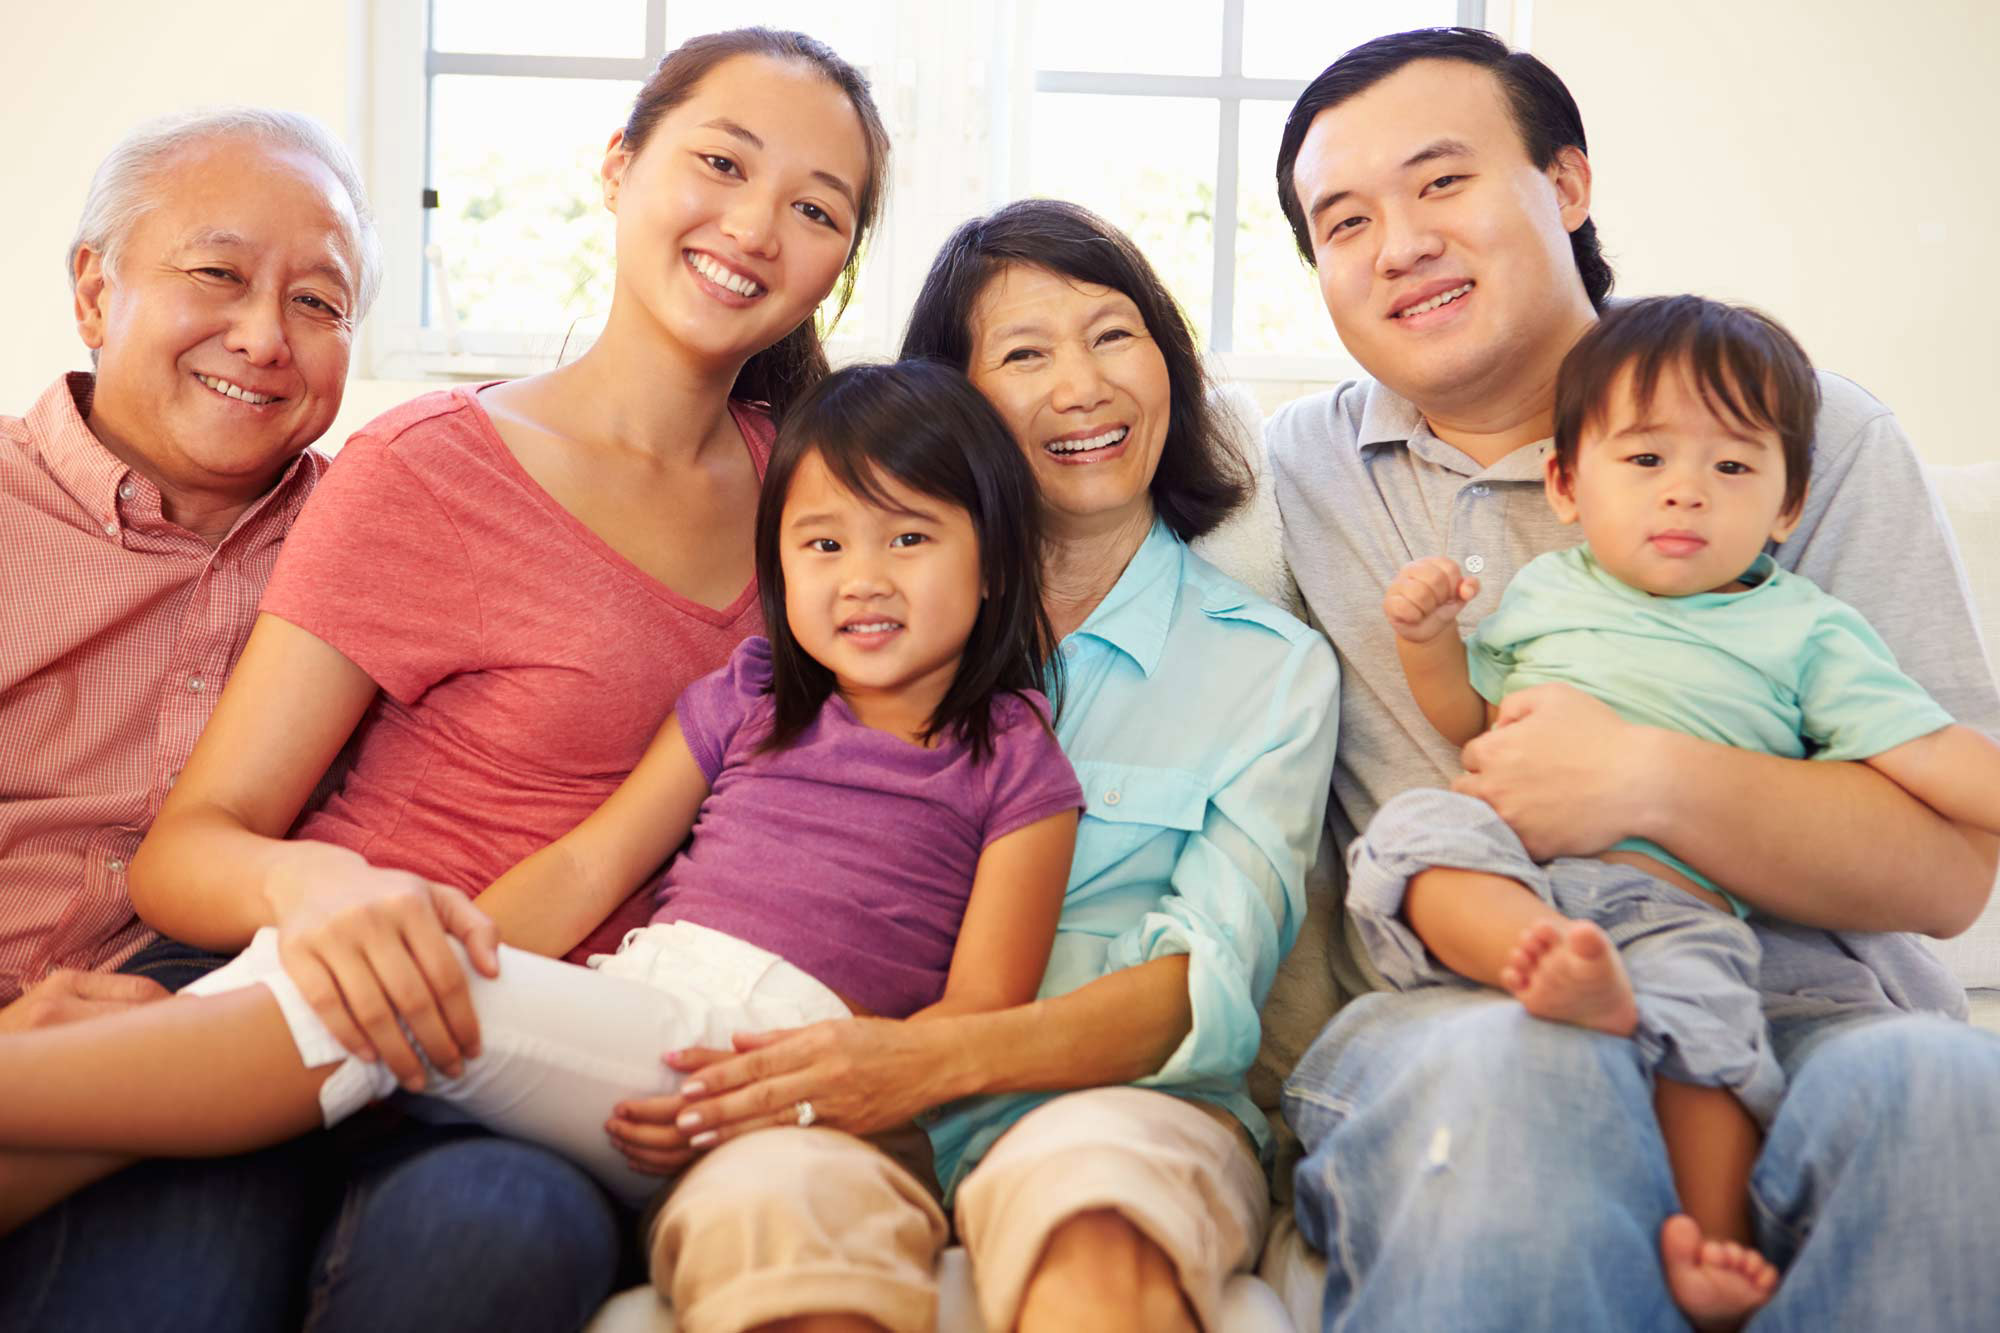 Family group images Pics for whatsapp dp Images Wallpaper Pics Photo Free Download